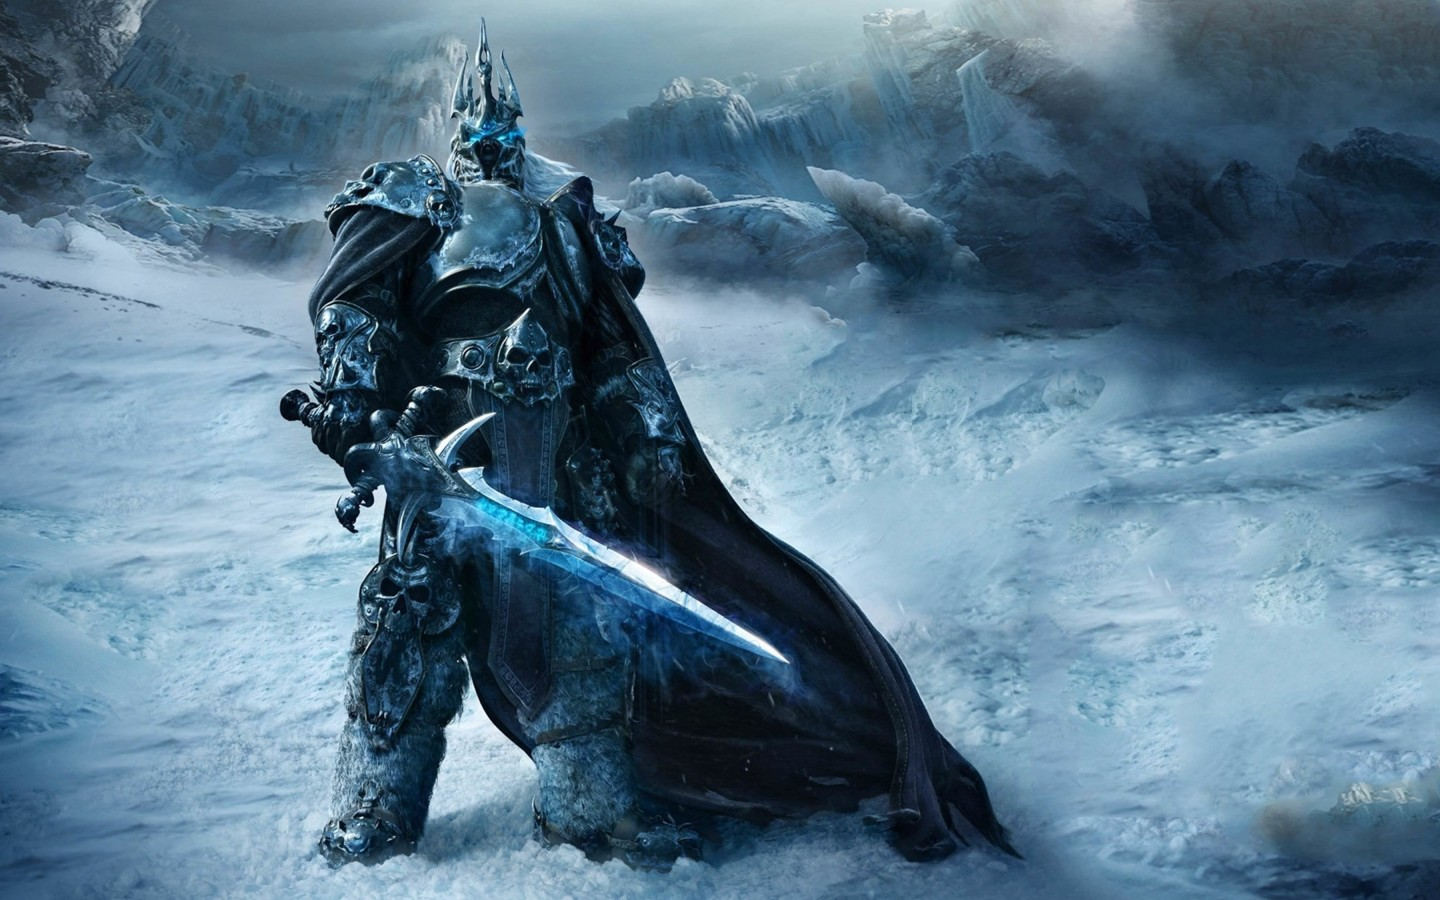 World of Warcraft: Wrath of the Lich King Wallpaper for Desktop 1440x900